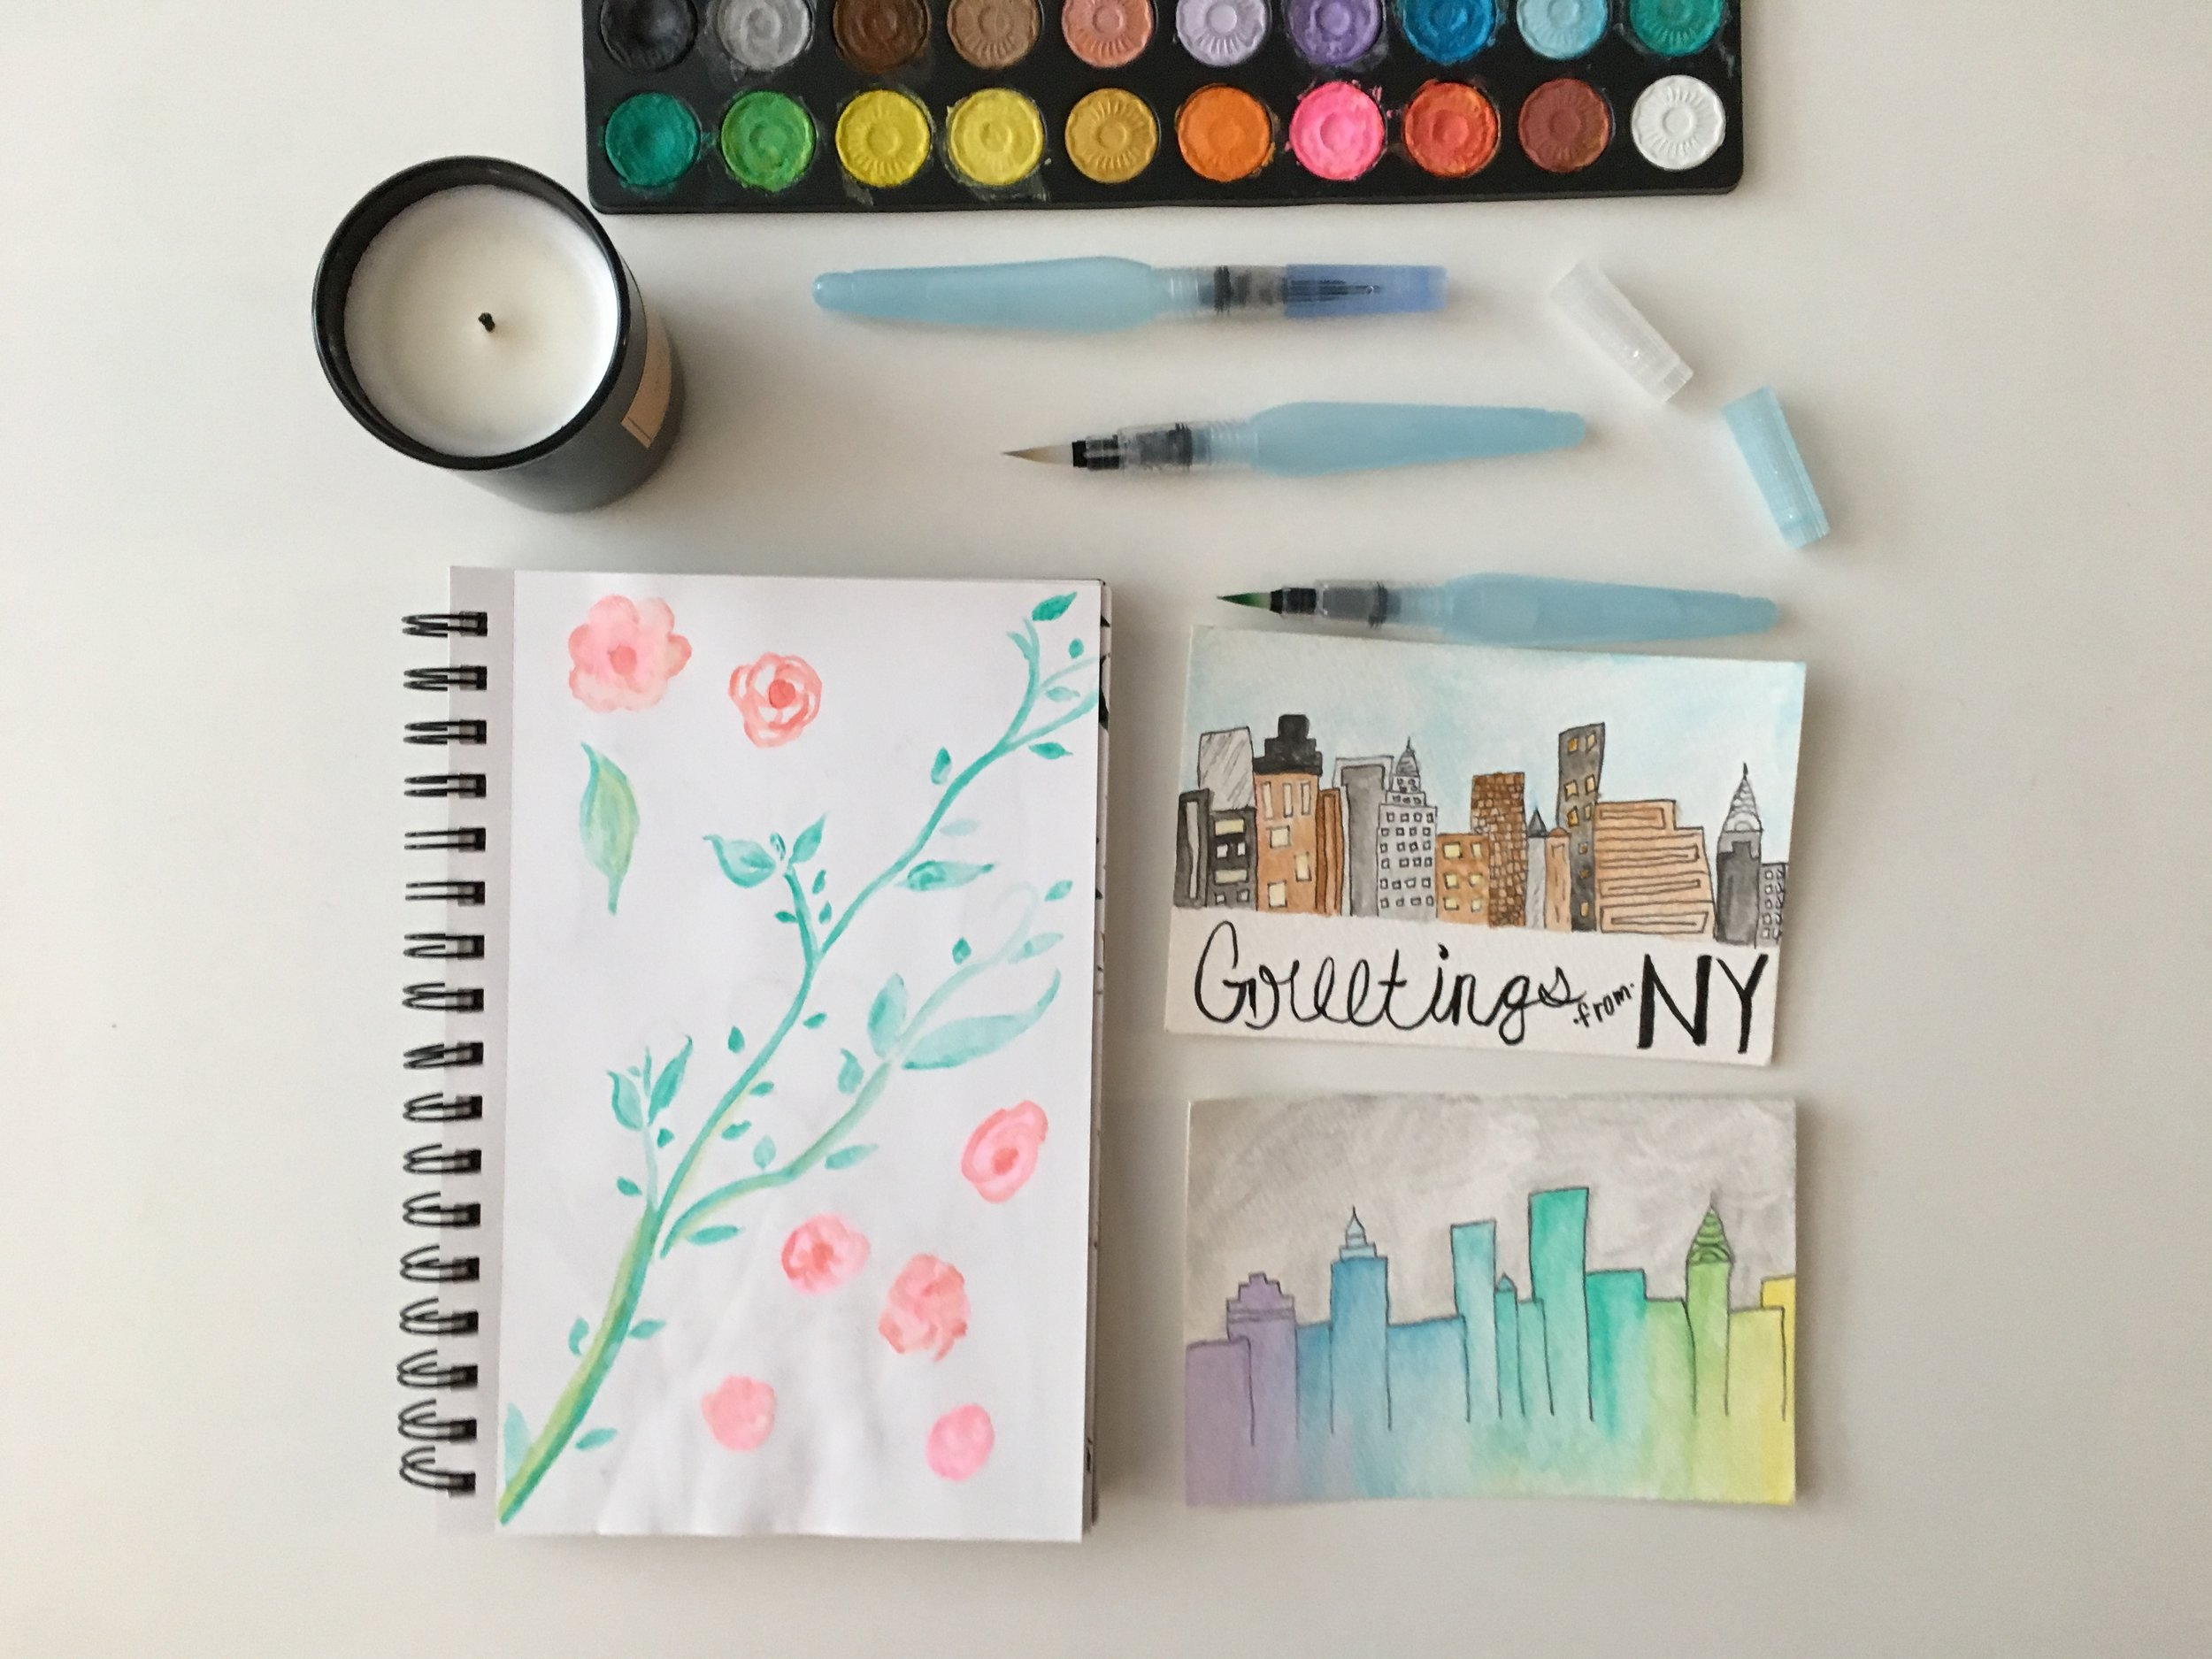 """Water Color Brush Pens   Fill these pens with water and use to paint with watercolors. The ease and mess avoidance that these brushes offer has given me another medium through which to """"doodle""""."""